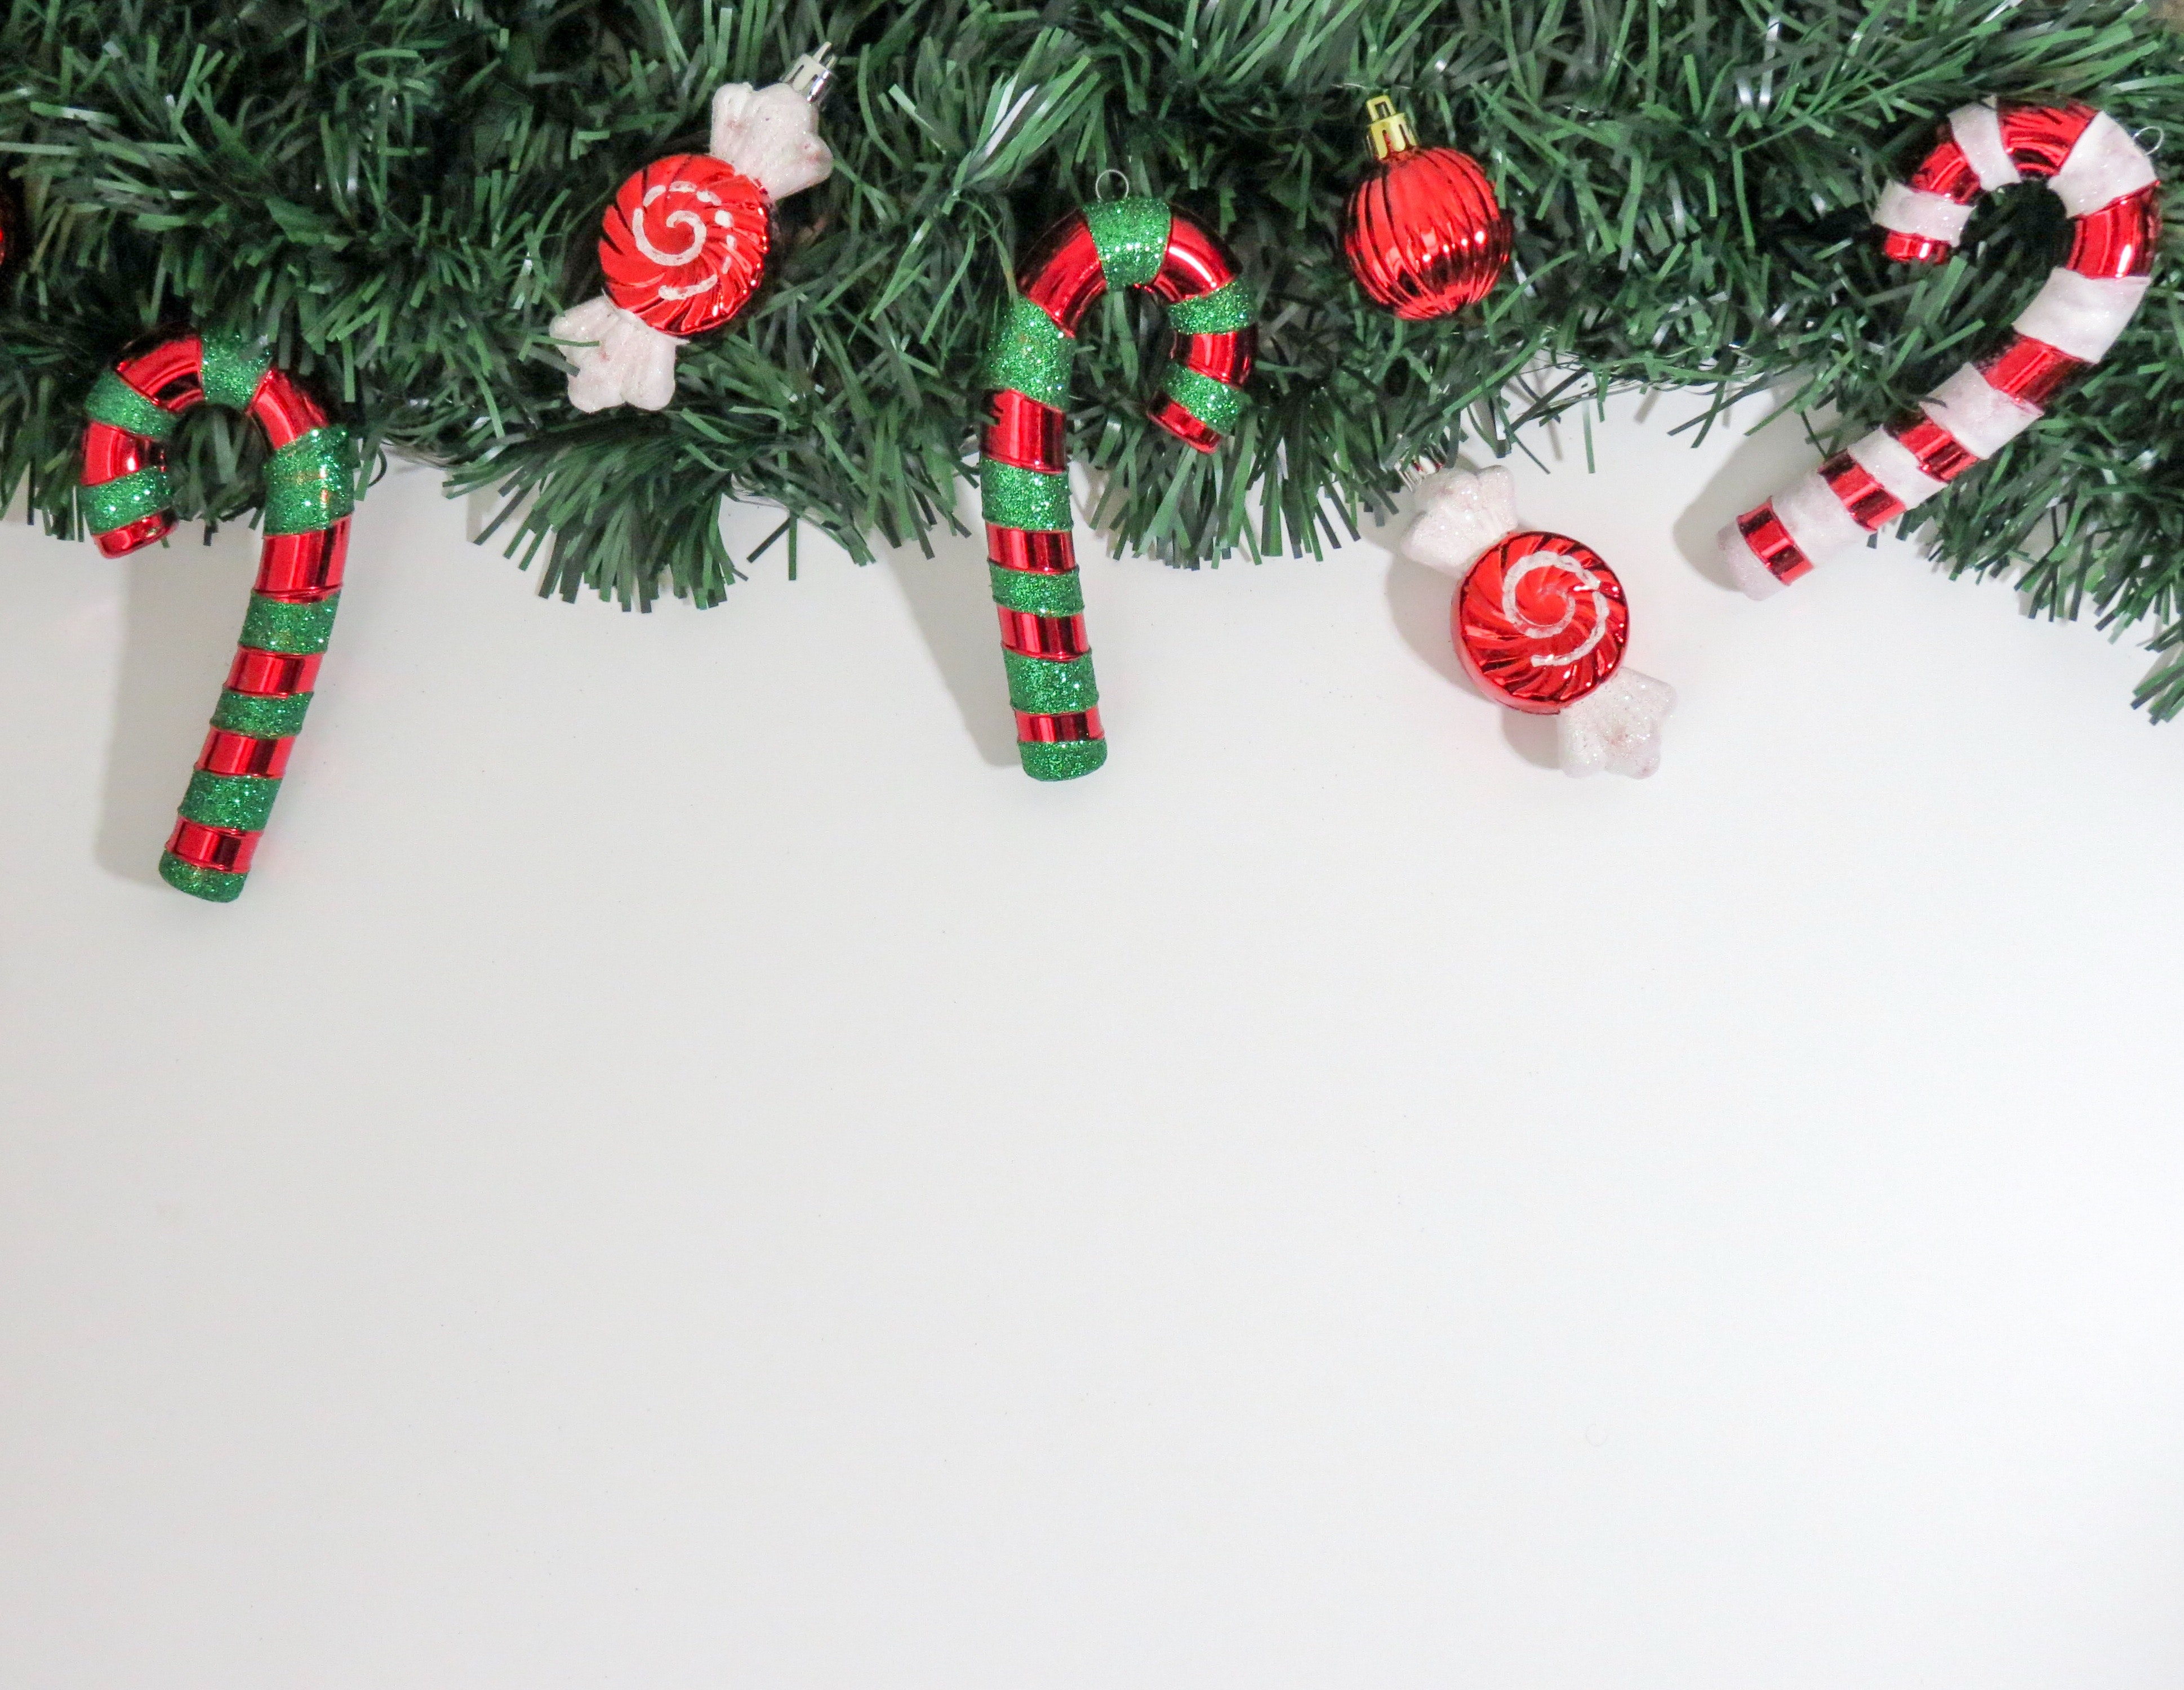 Close-up of Christmas Decorations Hanging on Tree, Bow, Holly, Winter, White, HQ Photo